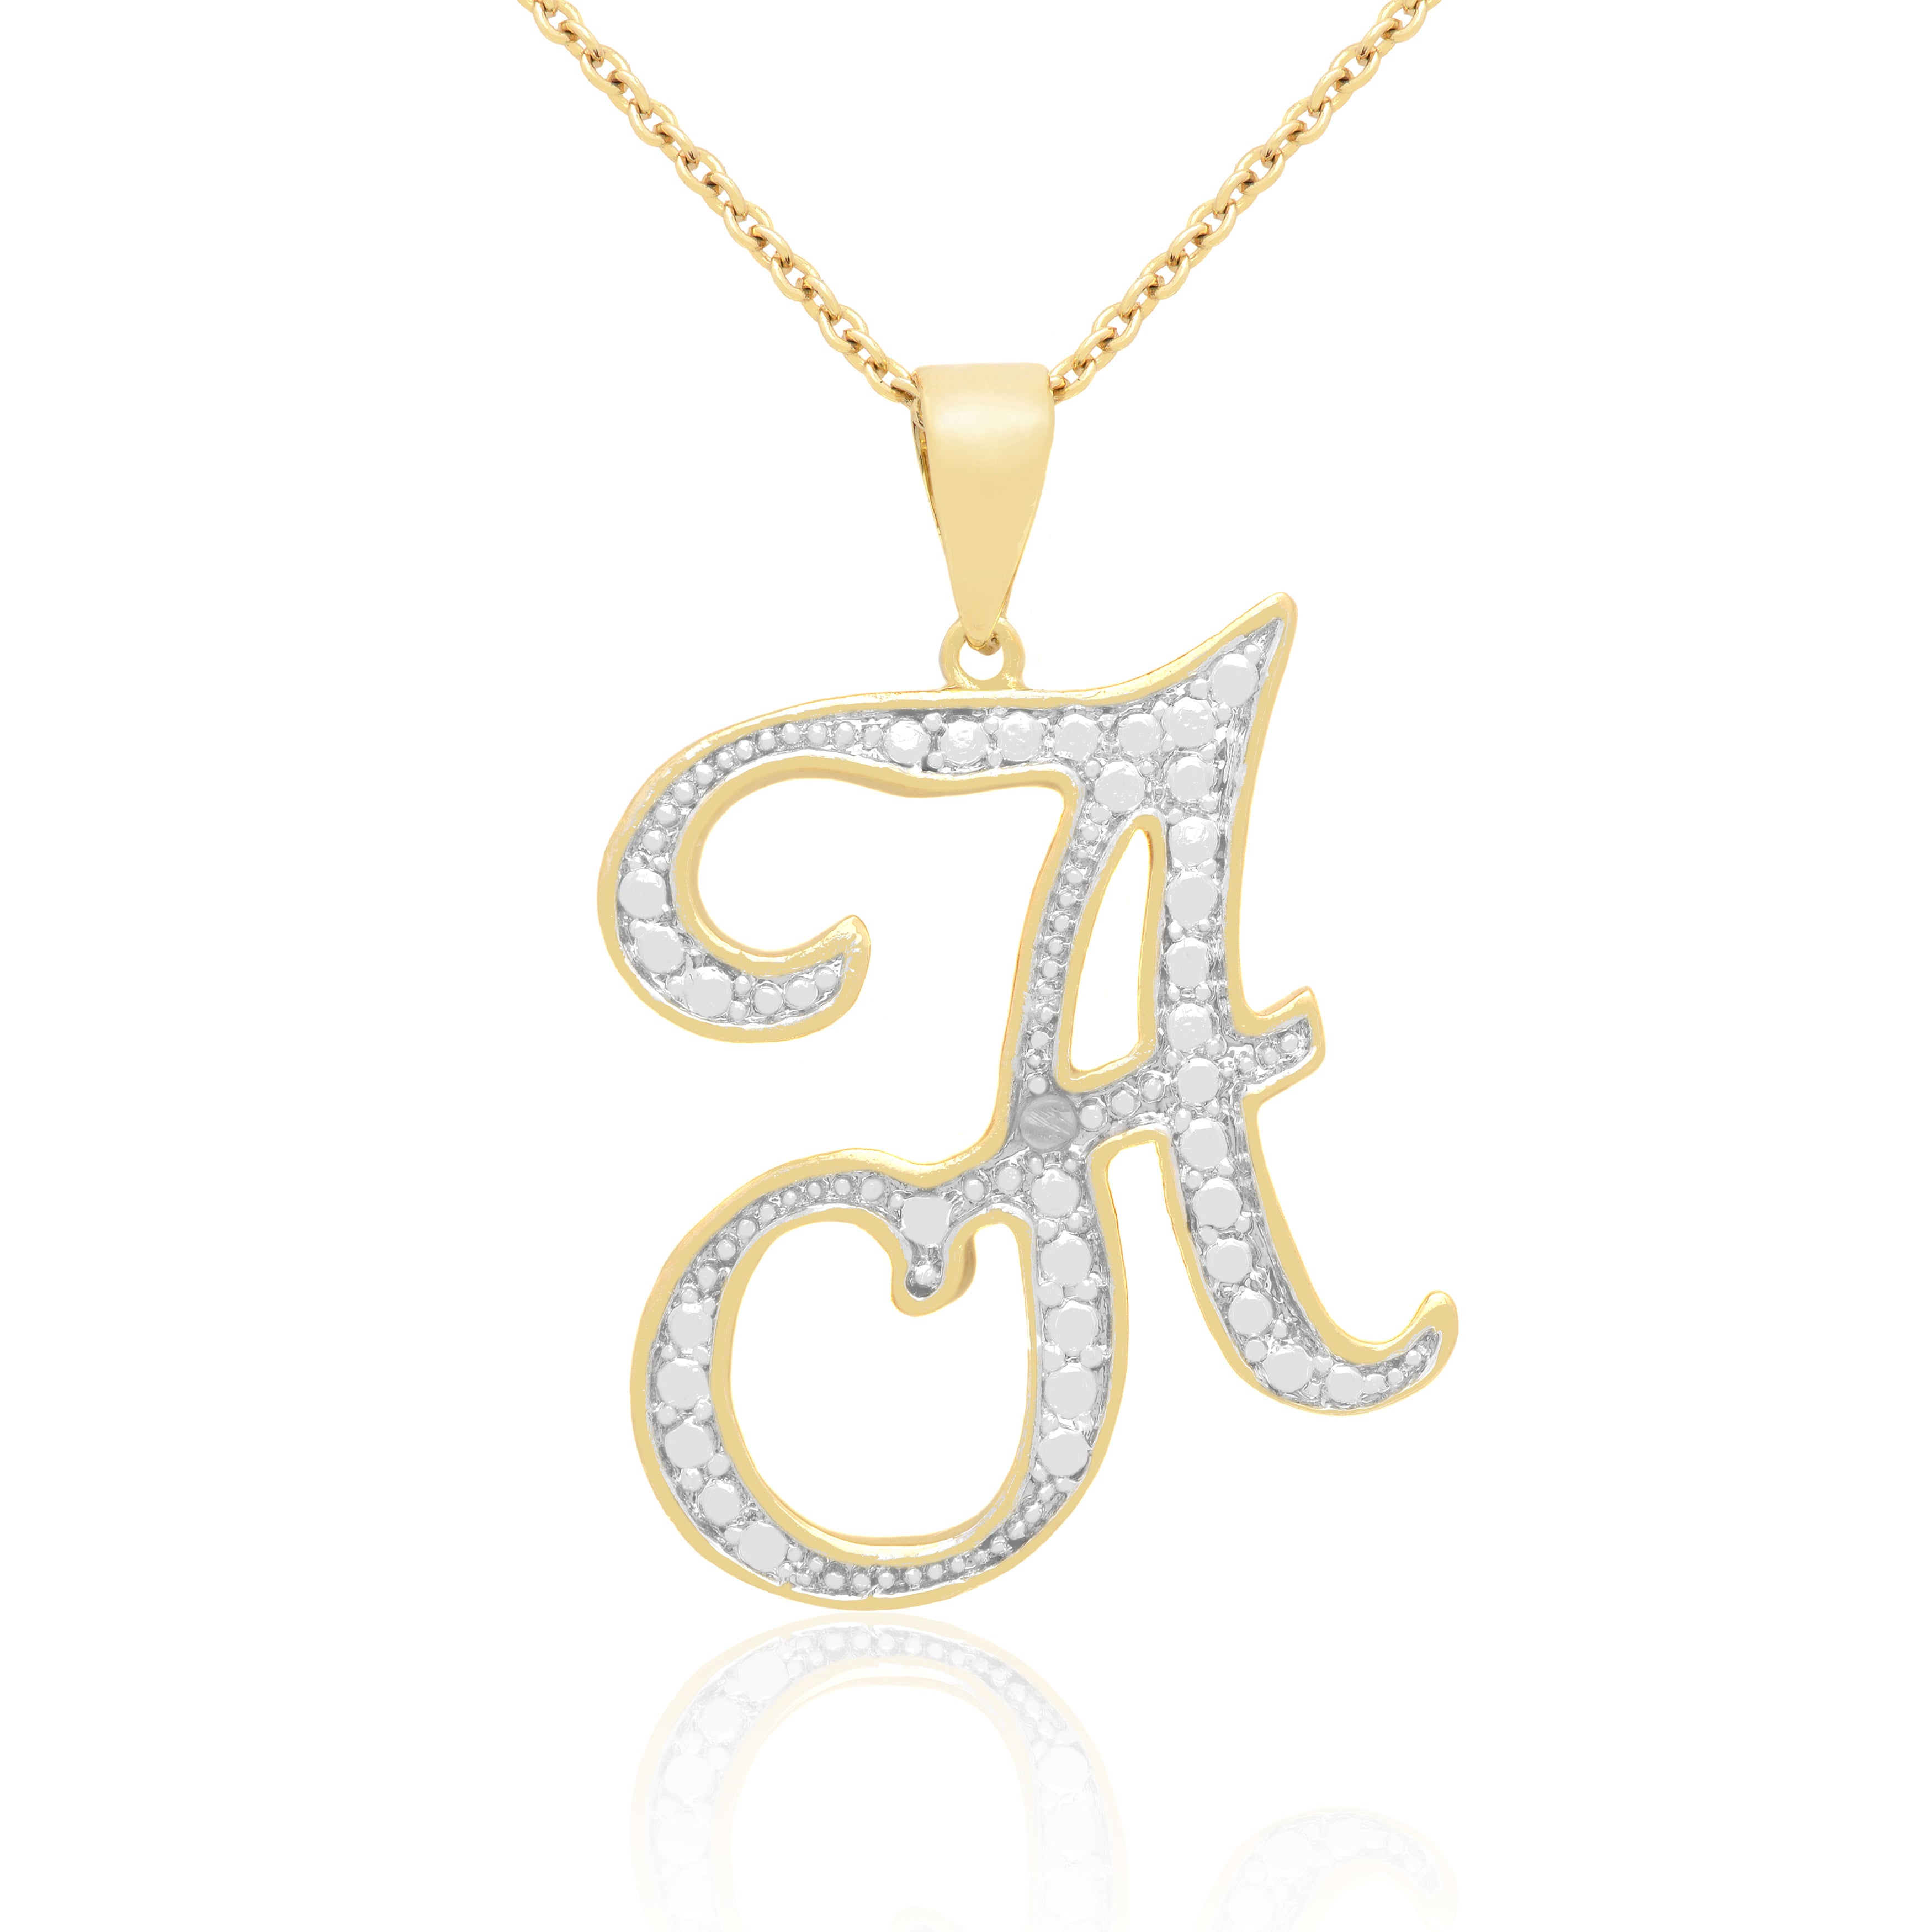 14k Gold Initial Pendant Necklace 14k gold overlay diamond accent initial pendant necklace free 14k gold overlay diamond accent initial pendant necklace free shipping on orders over 45 overstock 16076289 audiocablefo